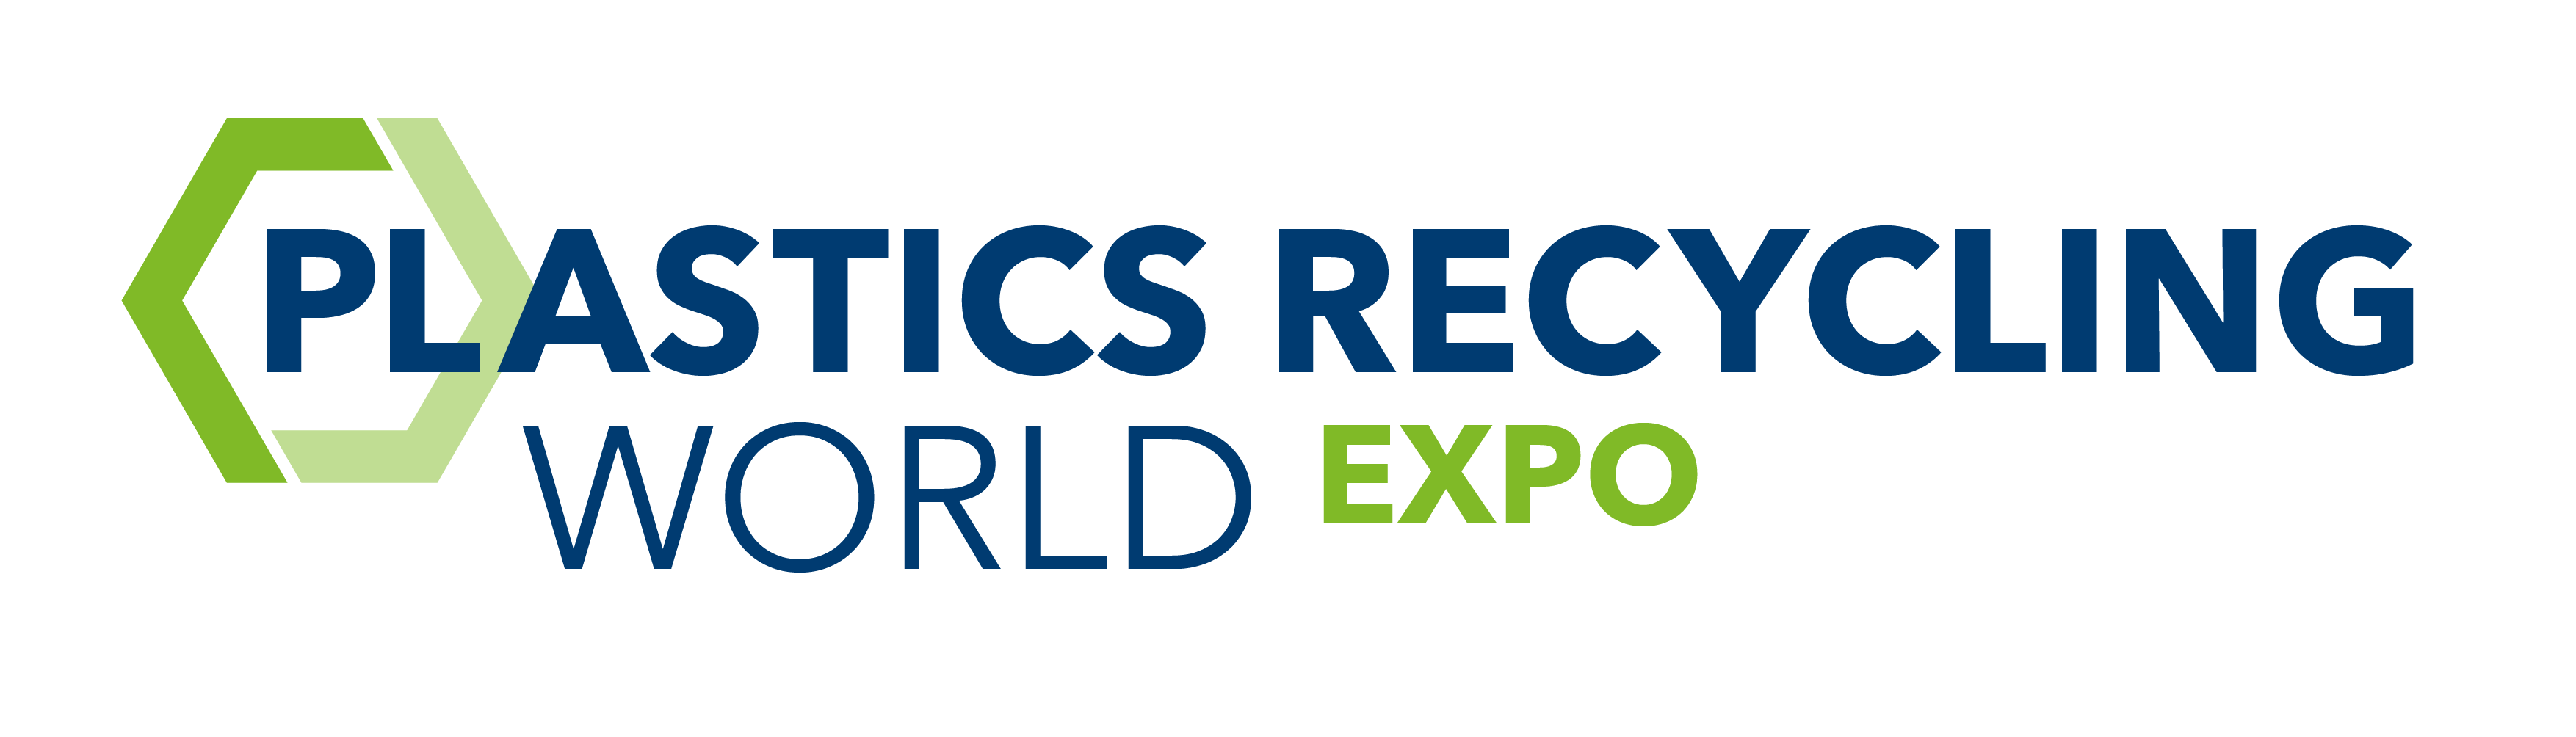 Dr. Ivan Ong to present at the Plastics Recycling World Expo